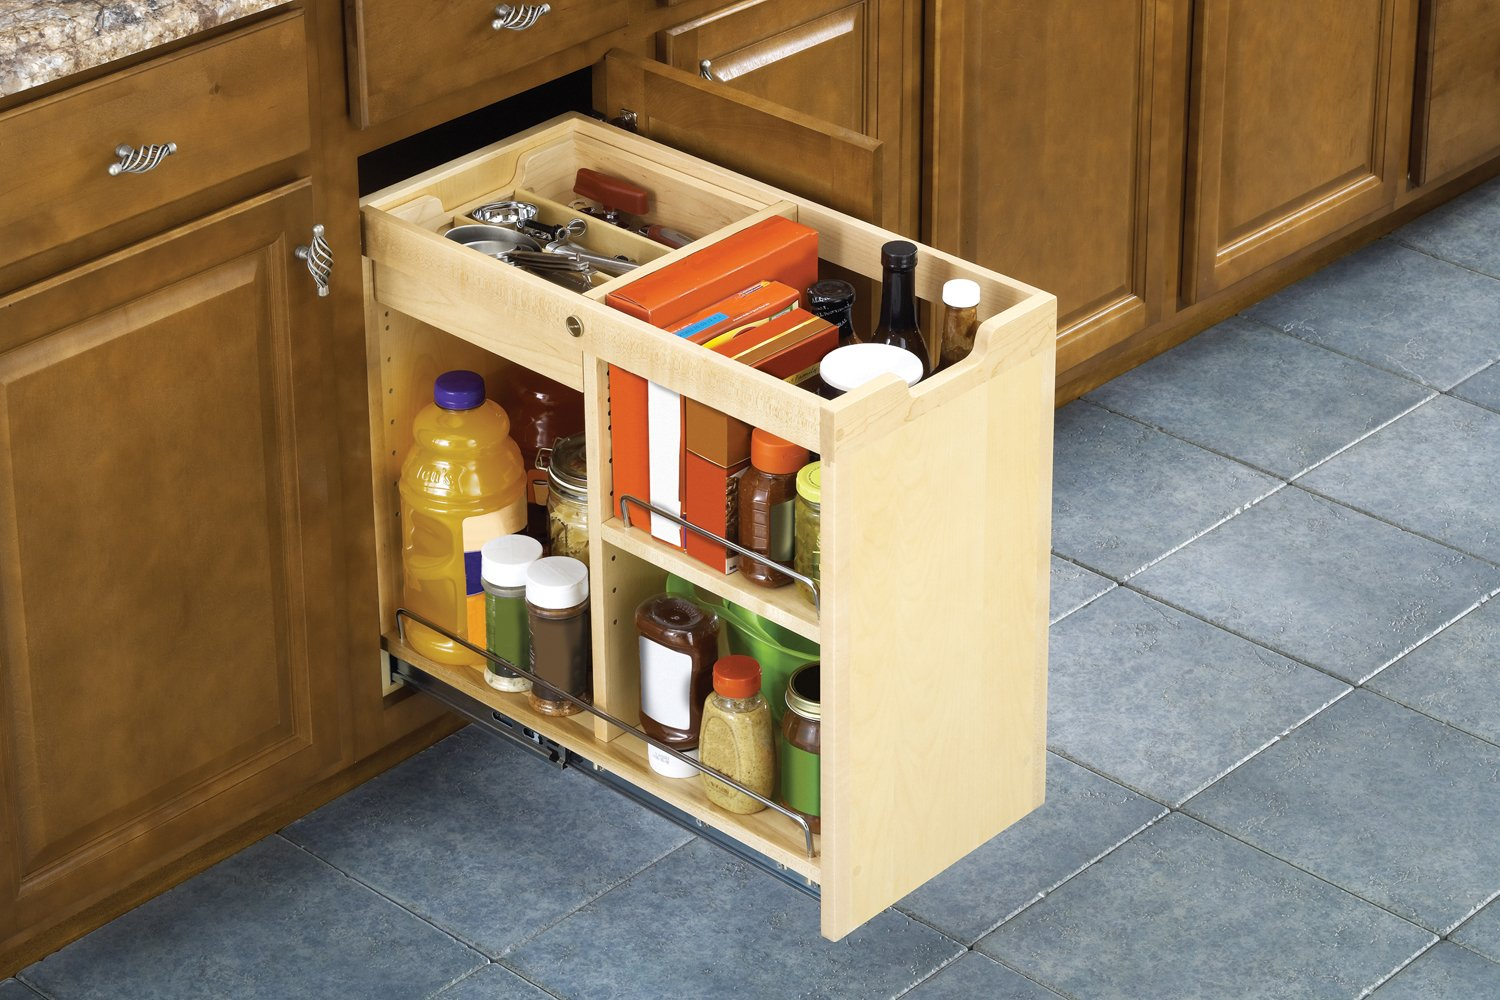 Amazon.com: FindIT Kitchen Storage Organization Base Cabinet Pullout With  Slide, Half Cutlery Tray And Shelf: Home U0026 Kitchen